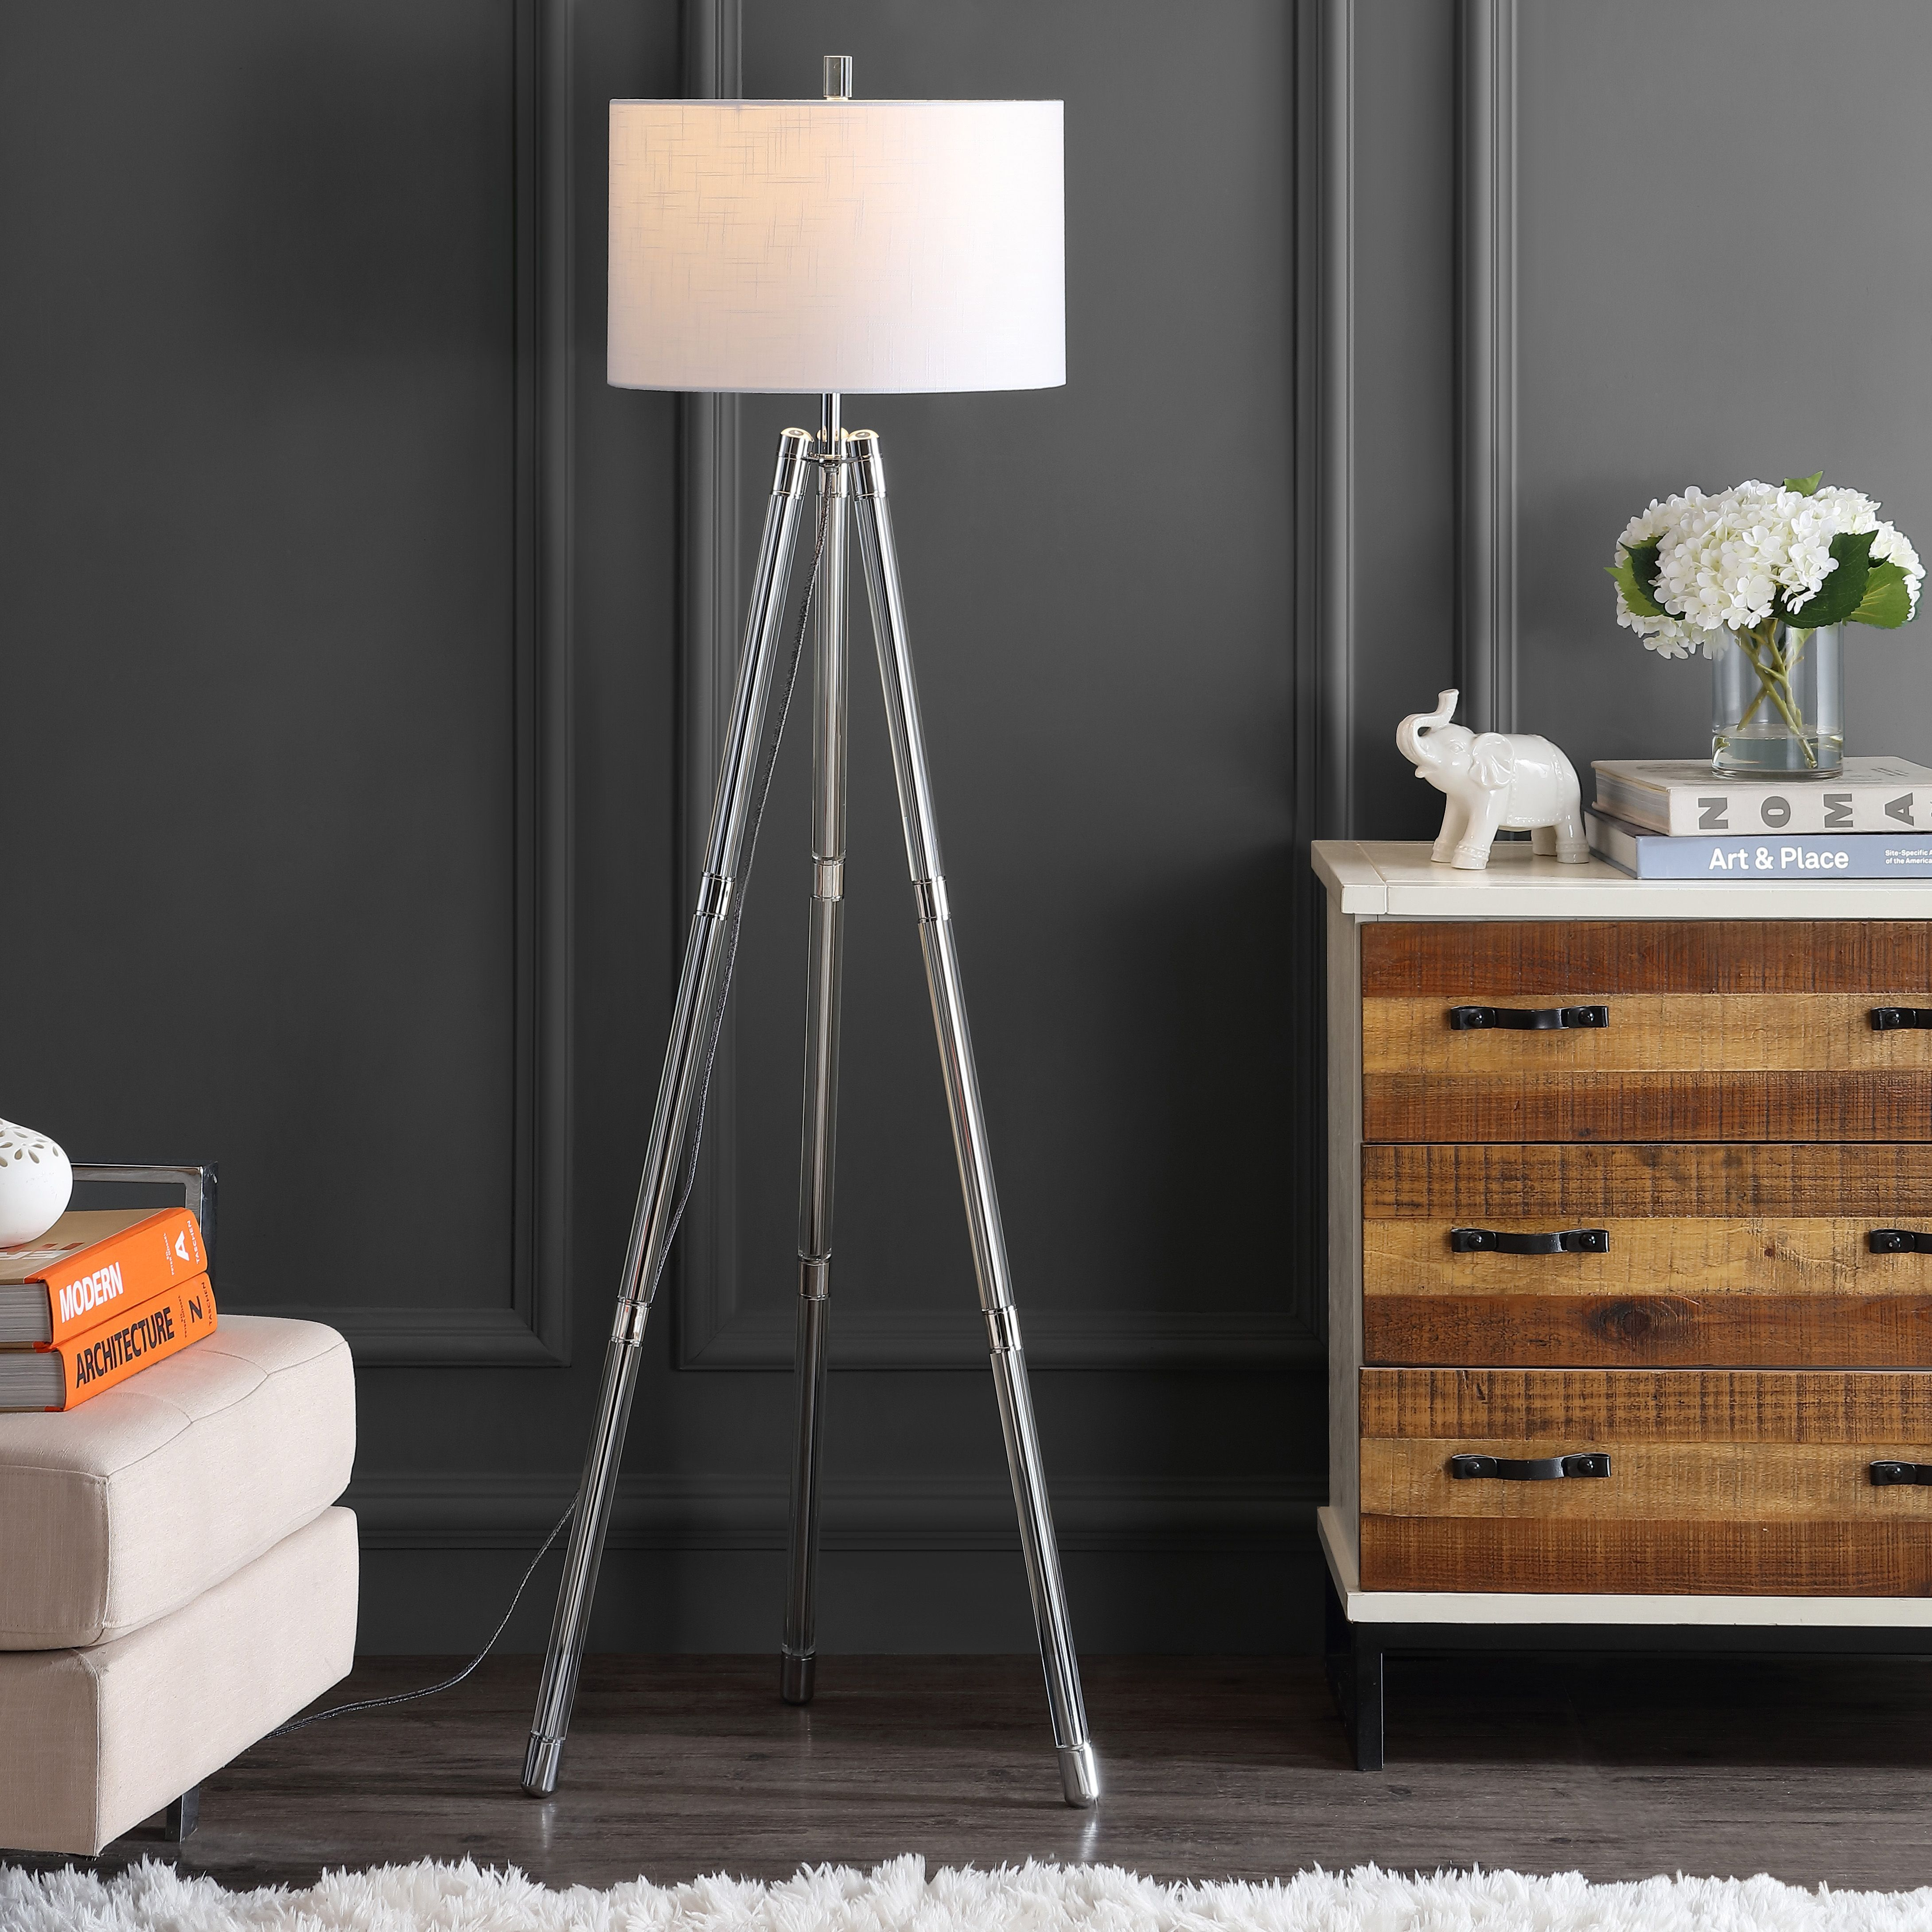 Home In 2020 With Images Stylish Floor Lamp Led Floor Lamp Modern Floor Lamps